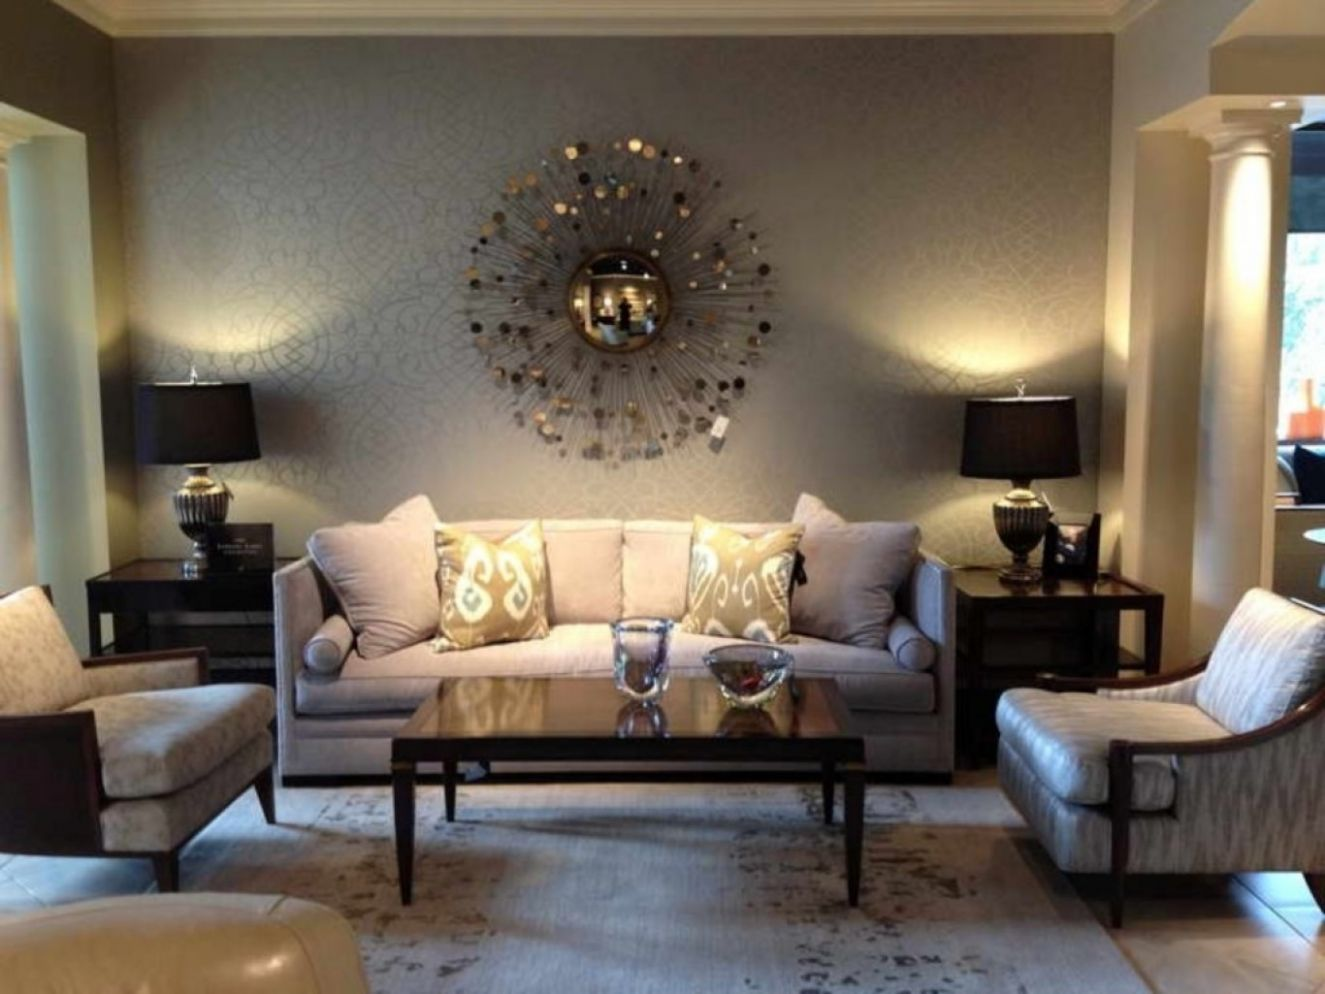 Wall Decor Ideas For Living Room Pinterest - Easy Craft Ideas